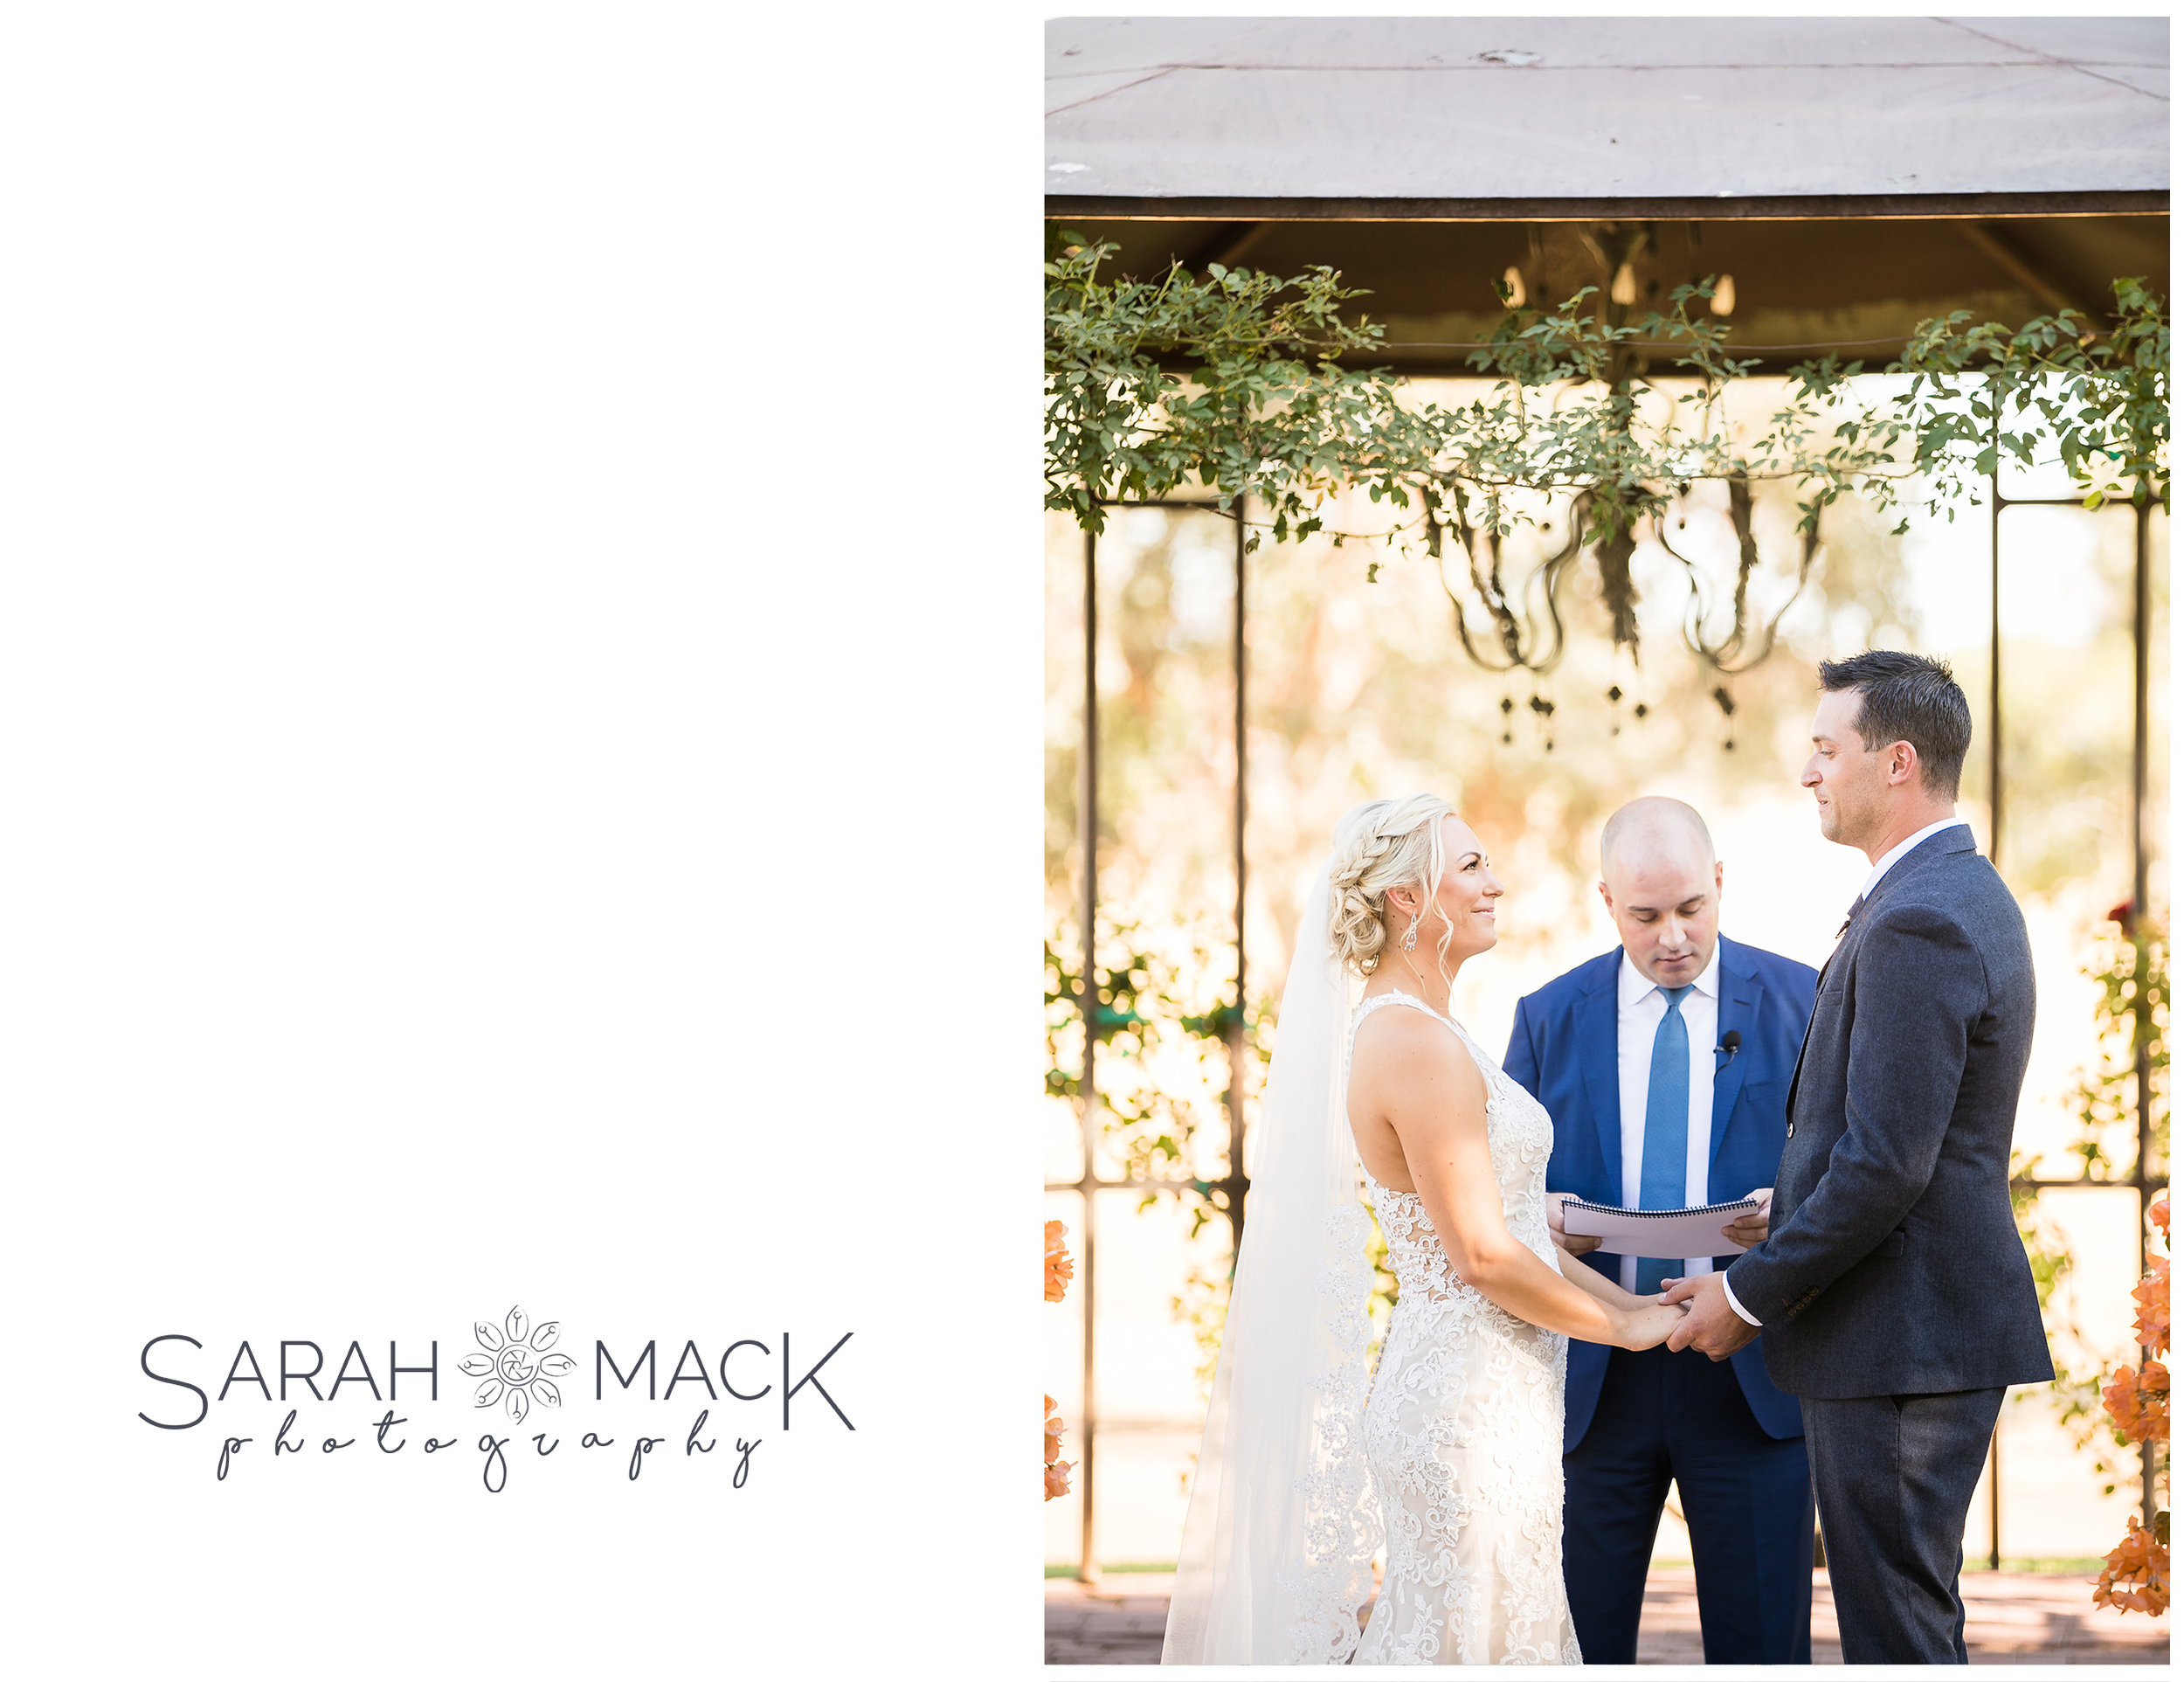 MA-Chandler-Ranch-Paso-Robles-Wedding-Photography-67.jpg